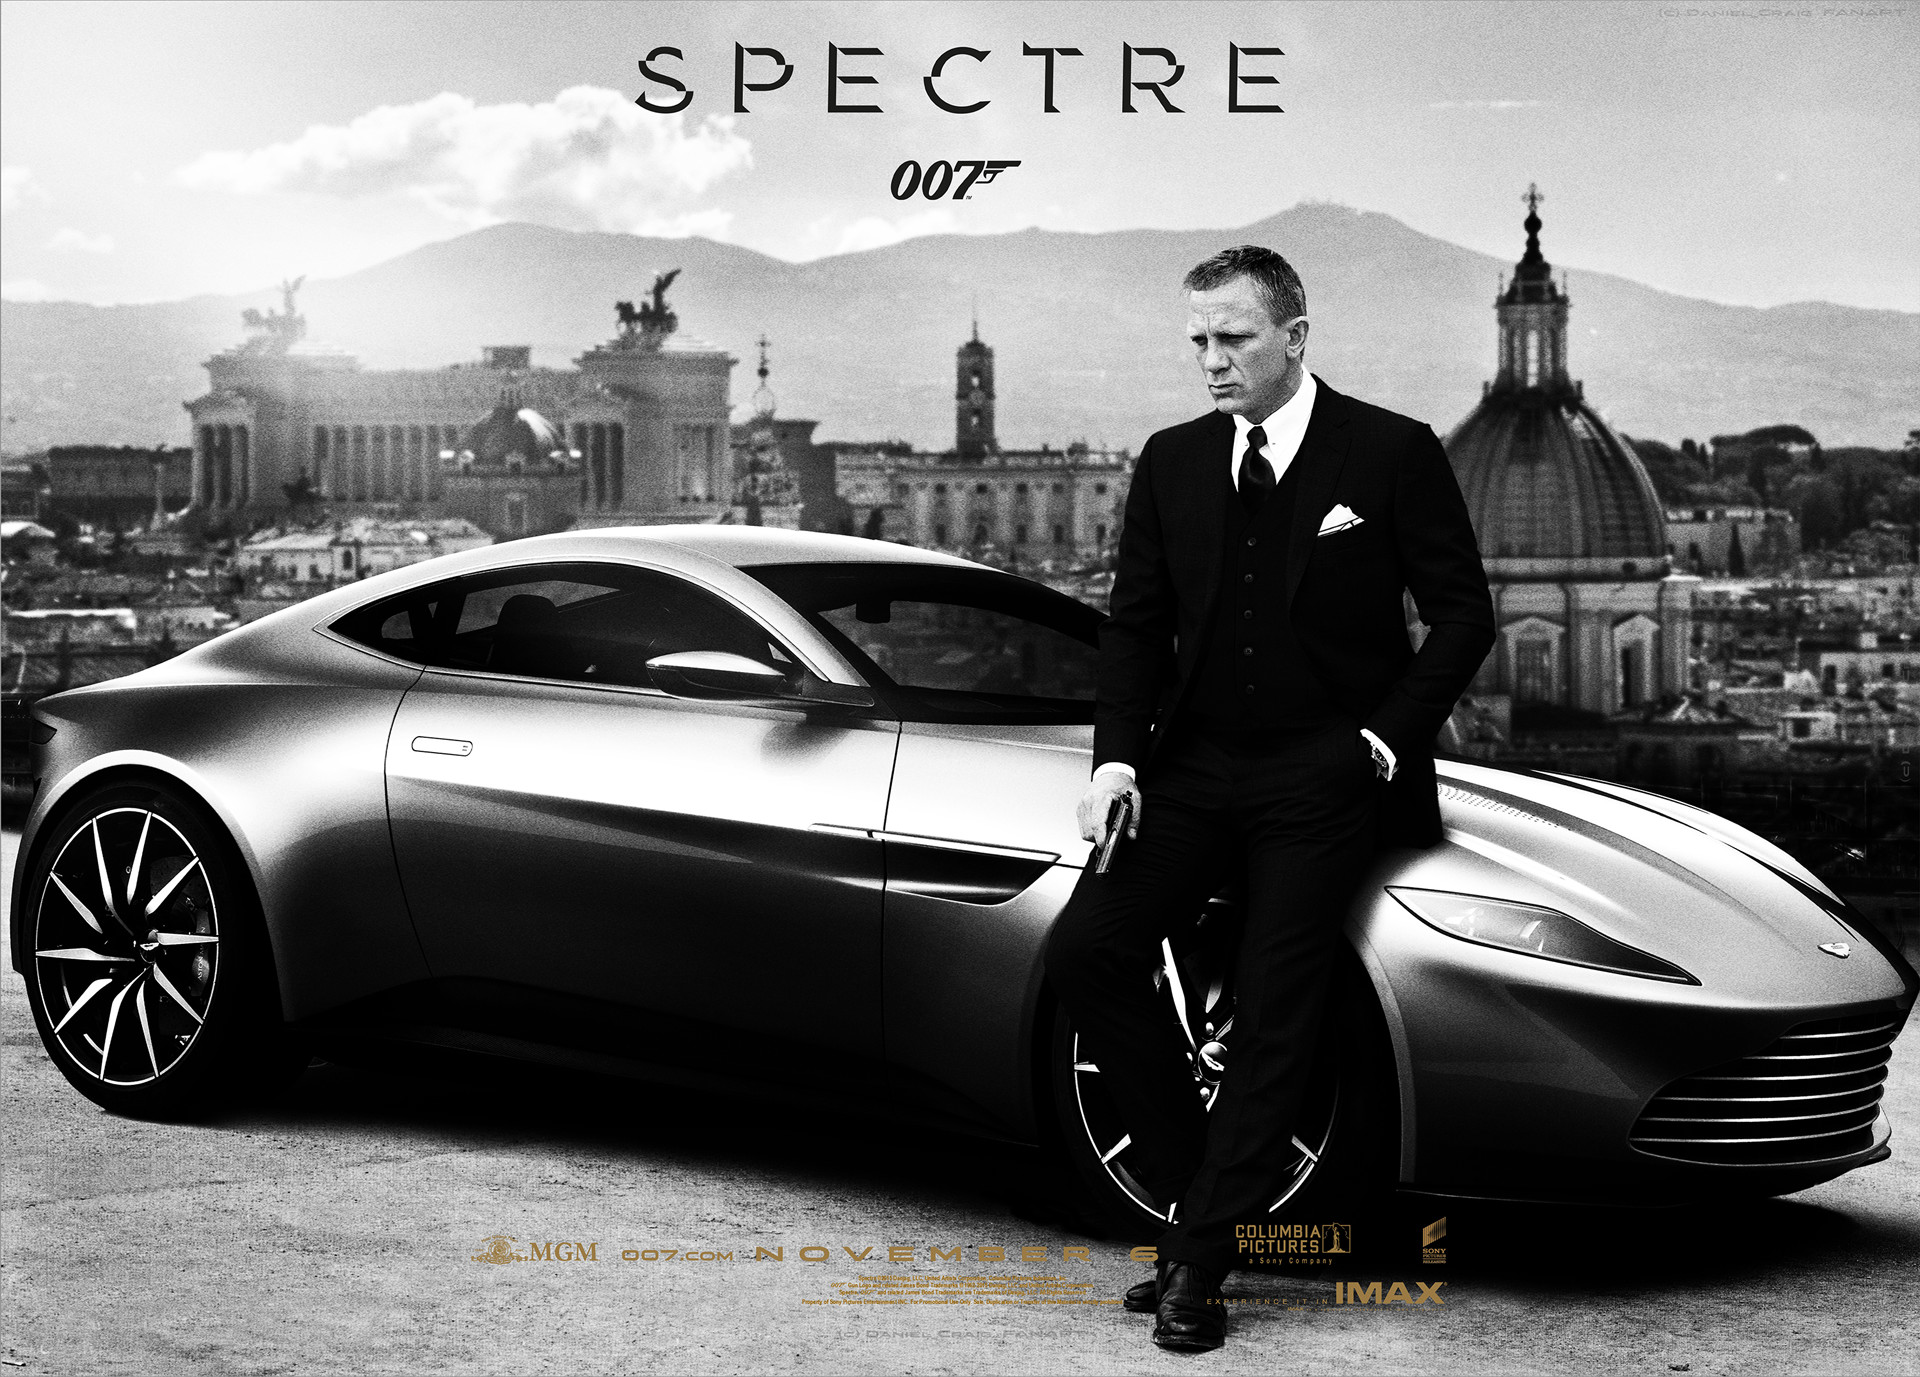 james-bond-007-spectre-wallpaper-Aston-Martin-DB10-Car